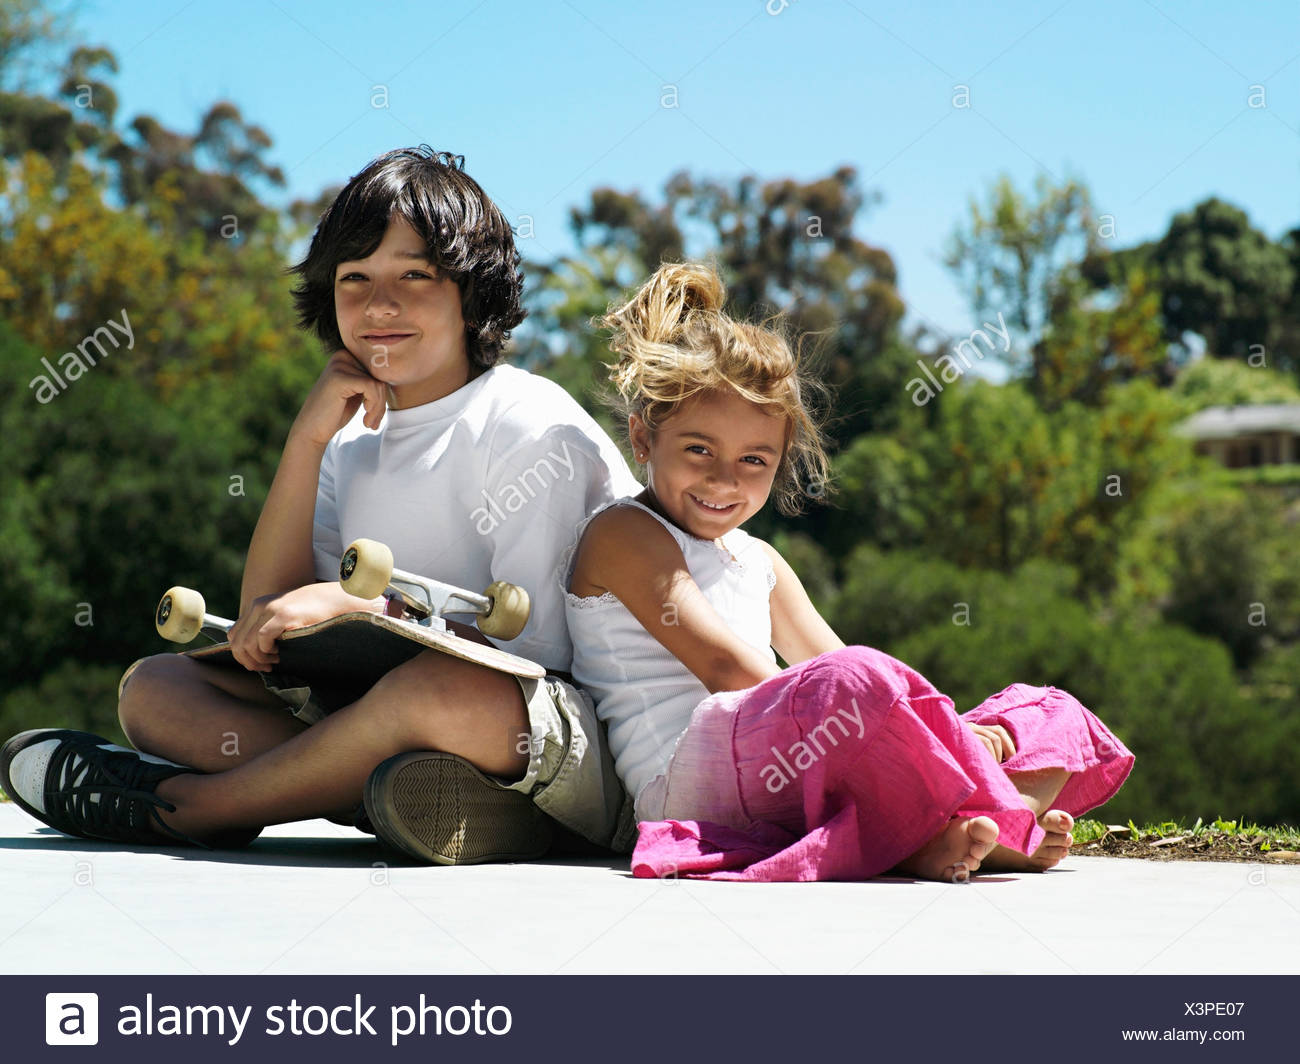 Boy 10 12 and girl 6 8 sitting in park boy with skateboard in lap smiling portrait - Stock Image